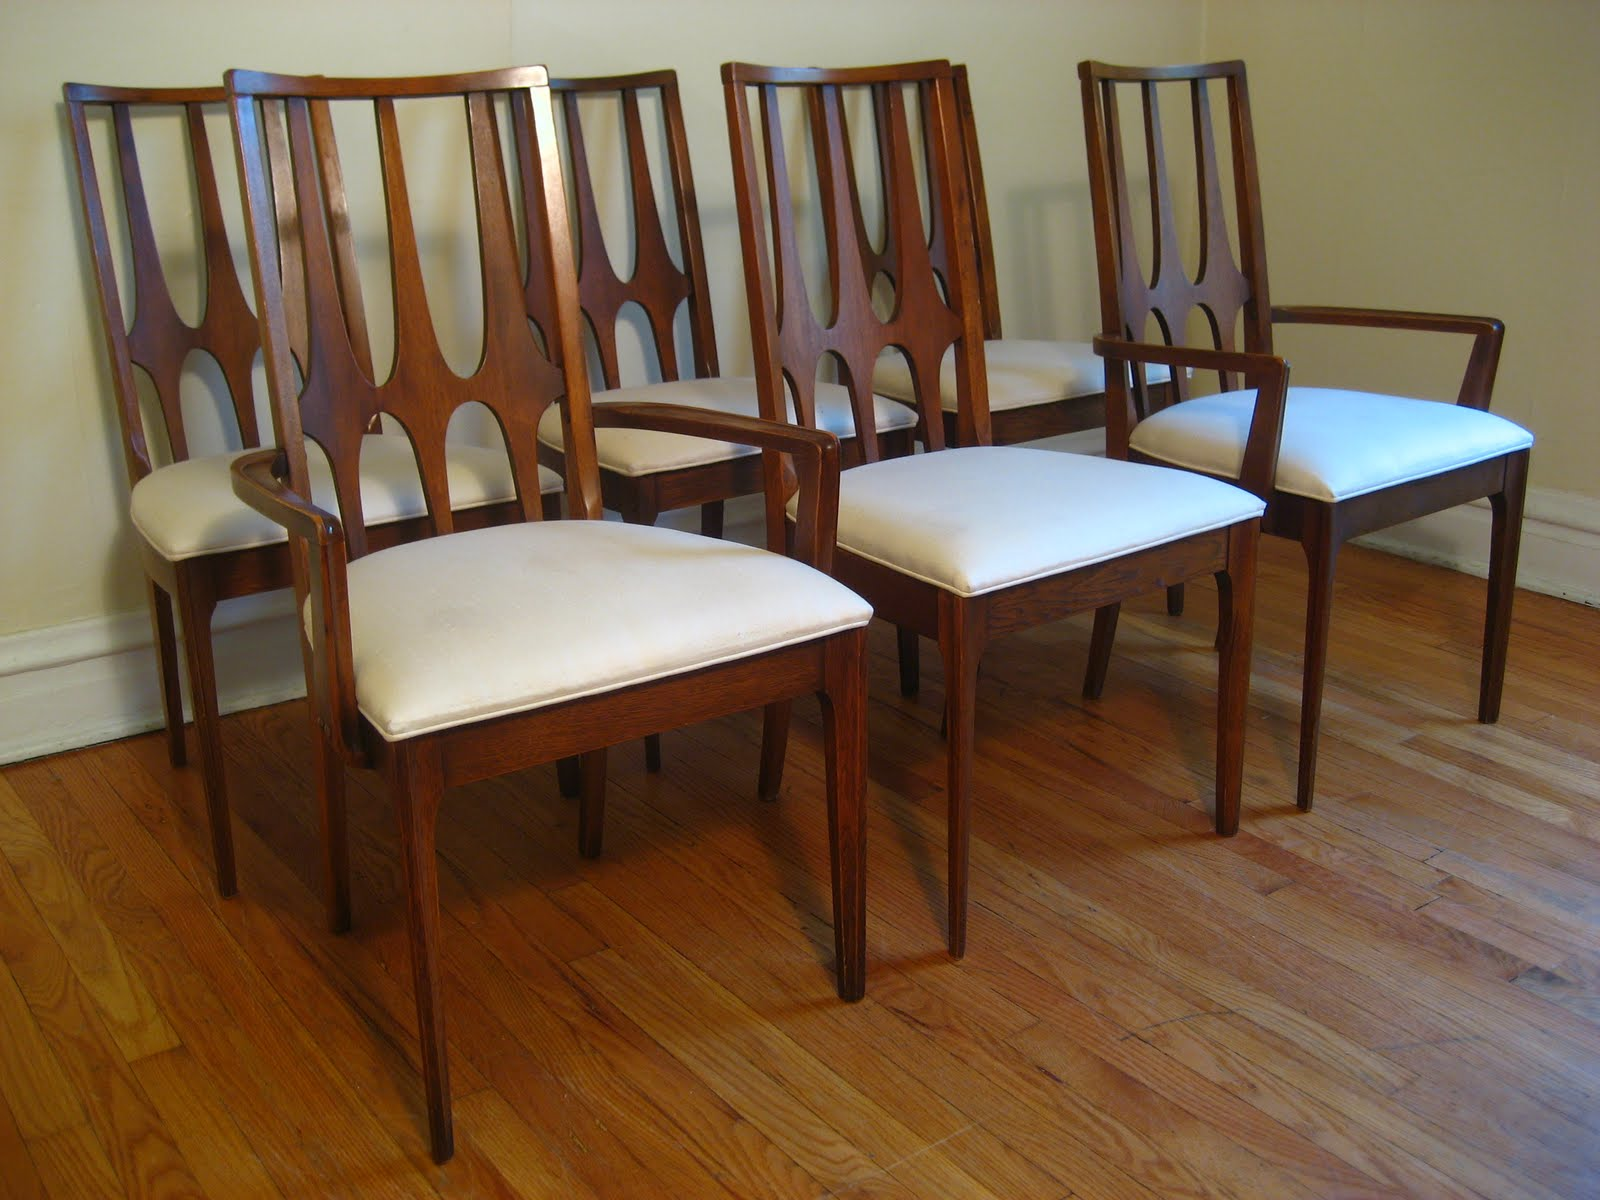 flatout design: Broyhill Brasilia Dining Chairs